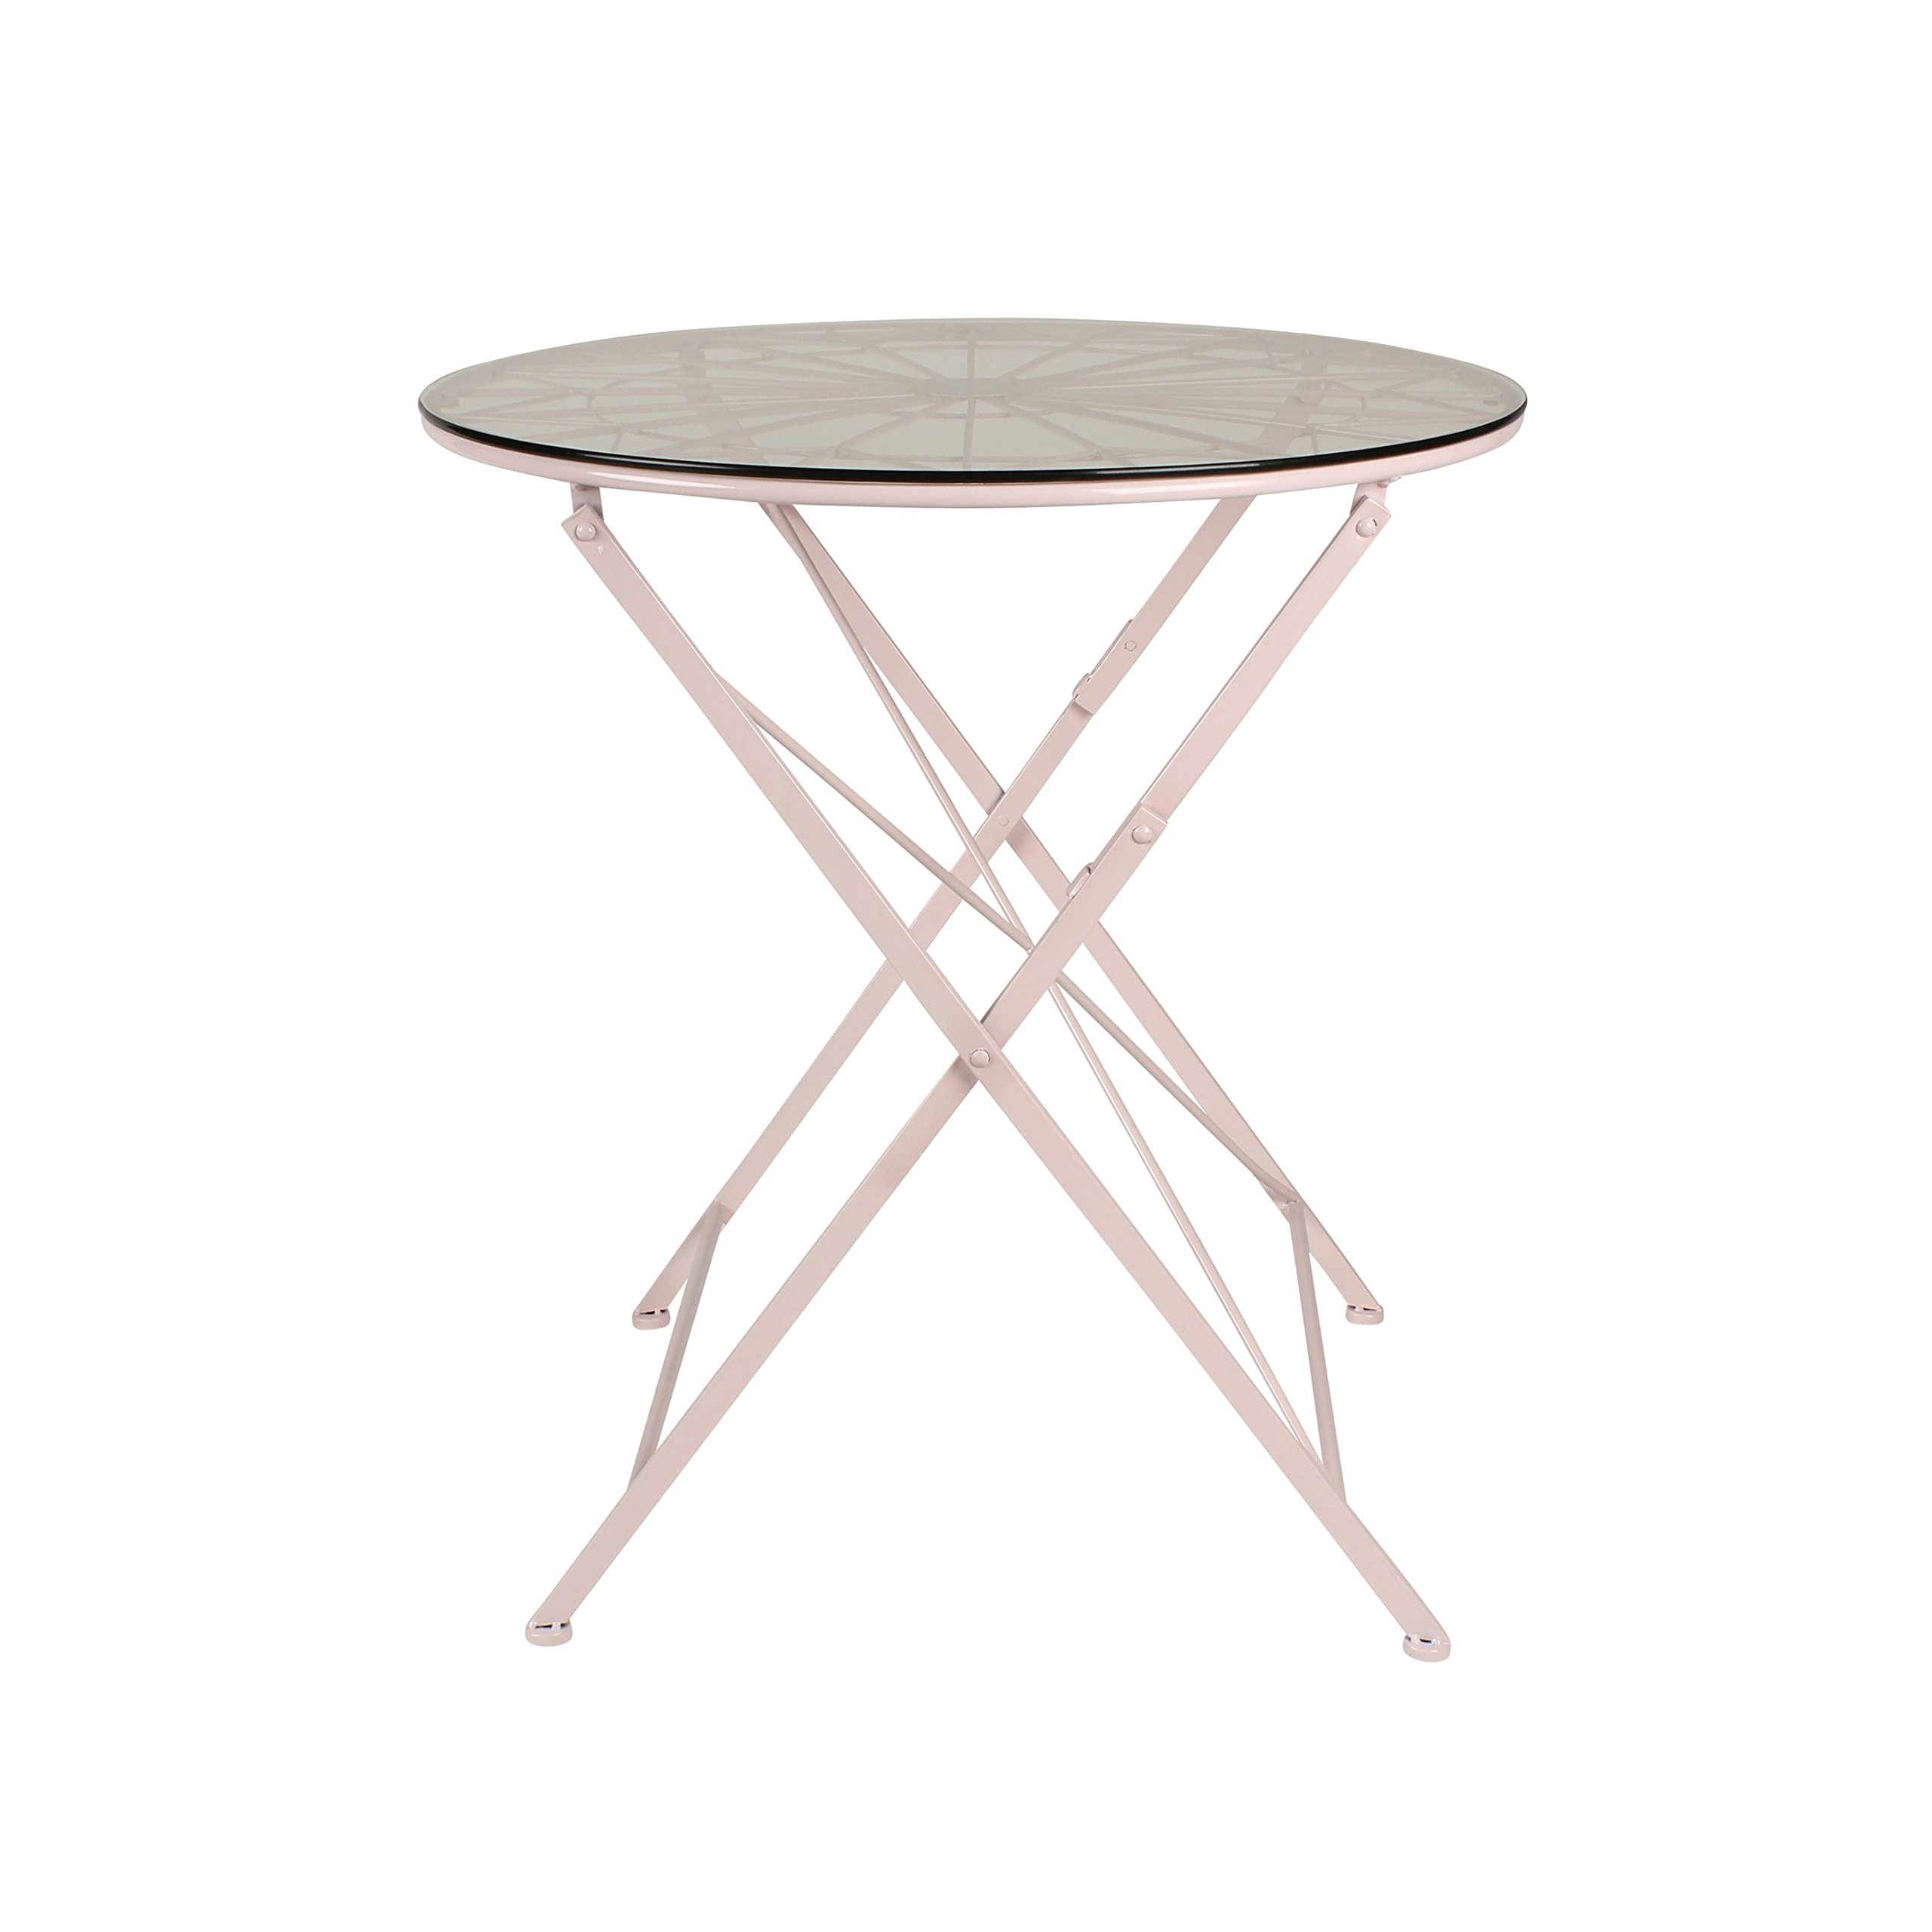 Kate and Laurel Kate & Laurel Thrapston Metal & Glass Round Dining Table, Pink by Kate and Laurel (Image #2)